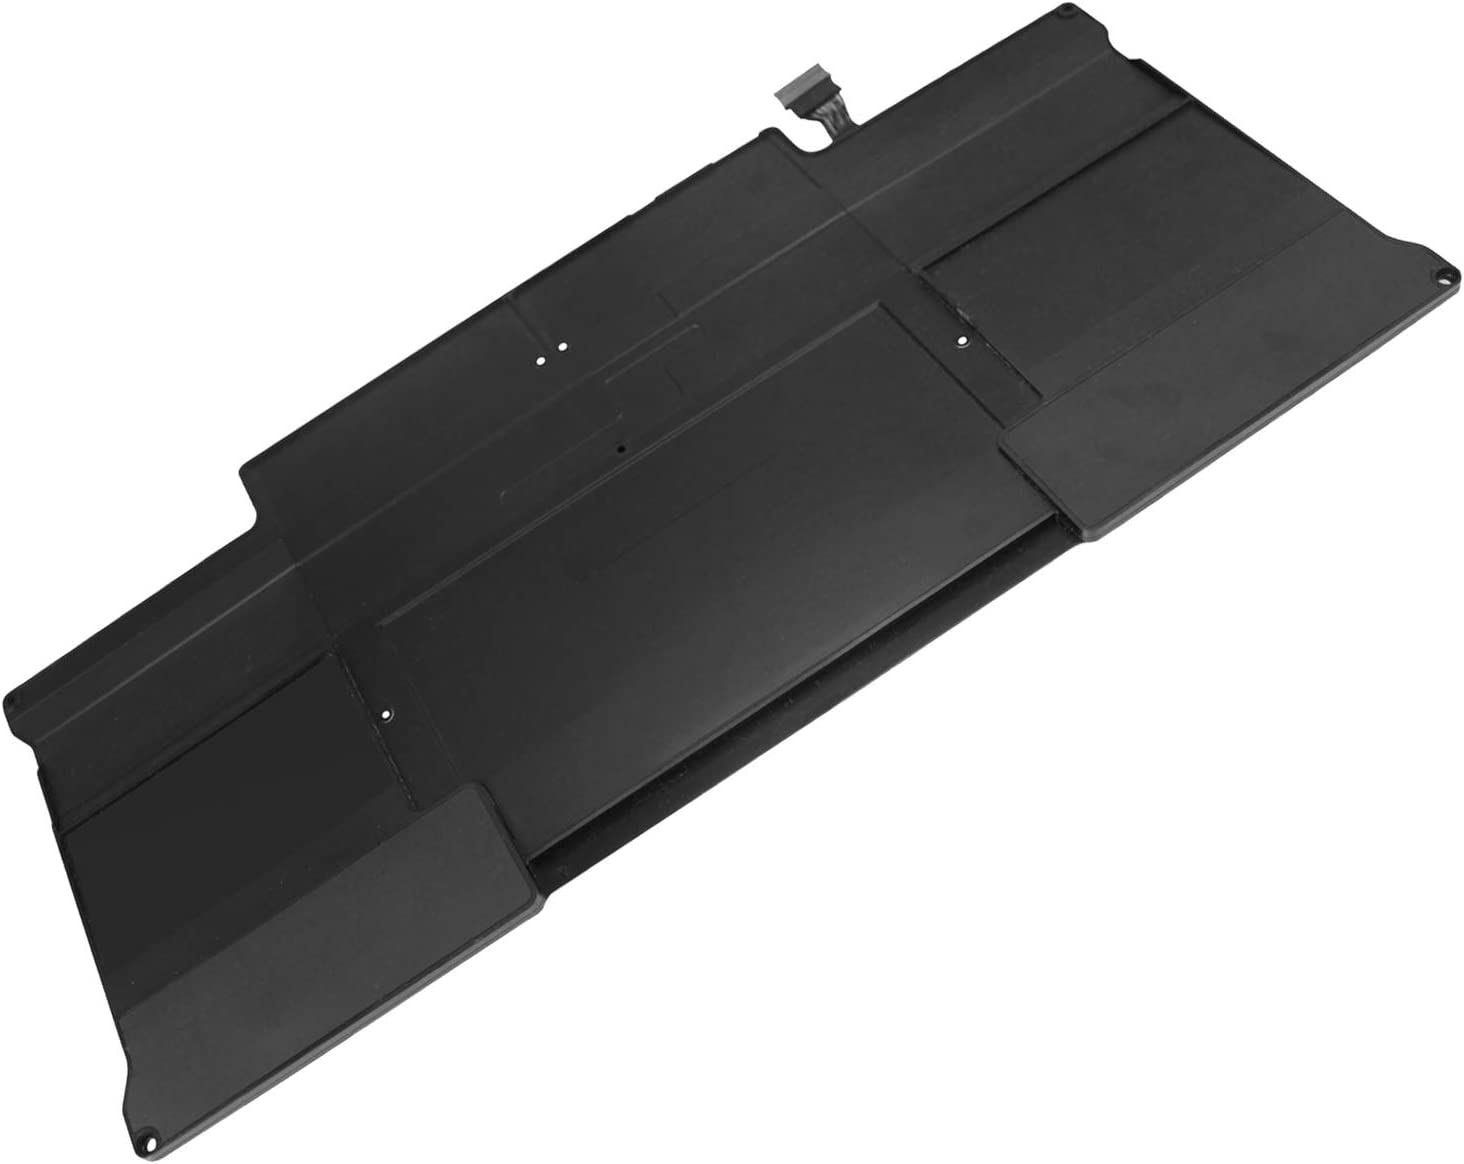 "LNOCCIY New Laptop Battery for Apple MacBook Air 13"" A1405 A1369 Late 2010 Mid 2011 / A1466 (Mid 2012 Mid 2013 Early 2014 Early 2015),Fits A1377 A1405 A1496 661-5731 MC503 MC504 020-7379-A"